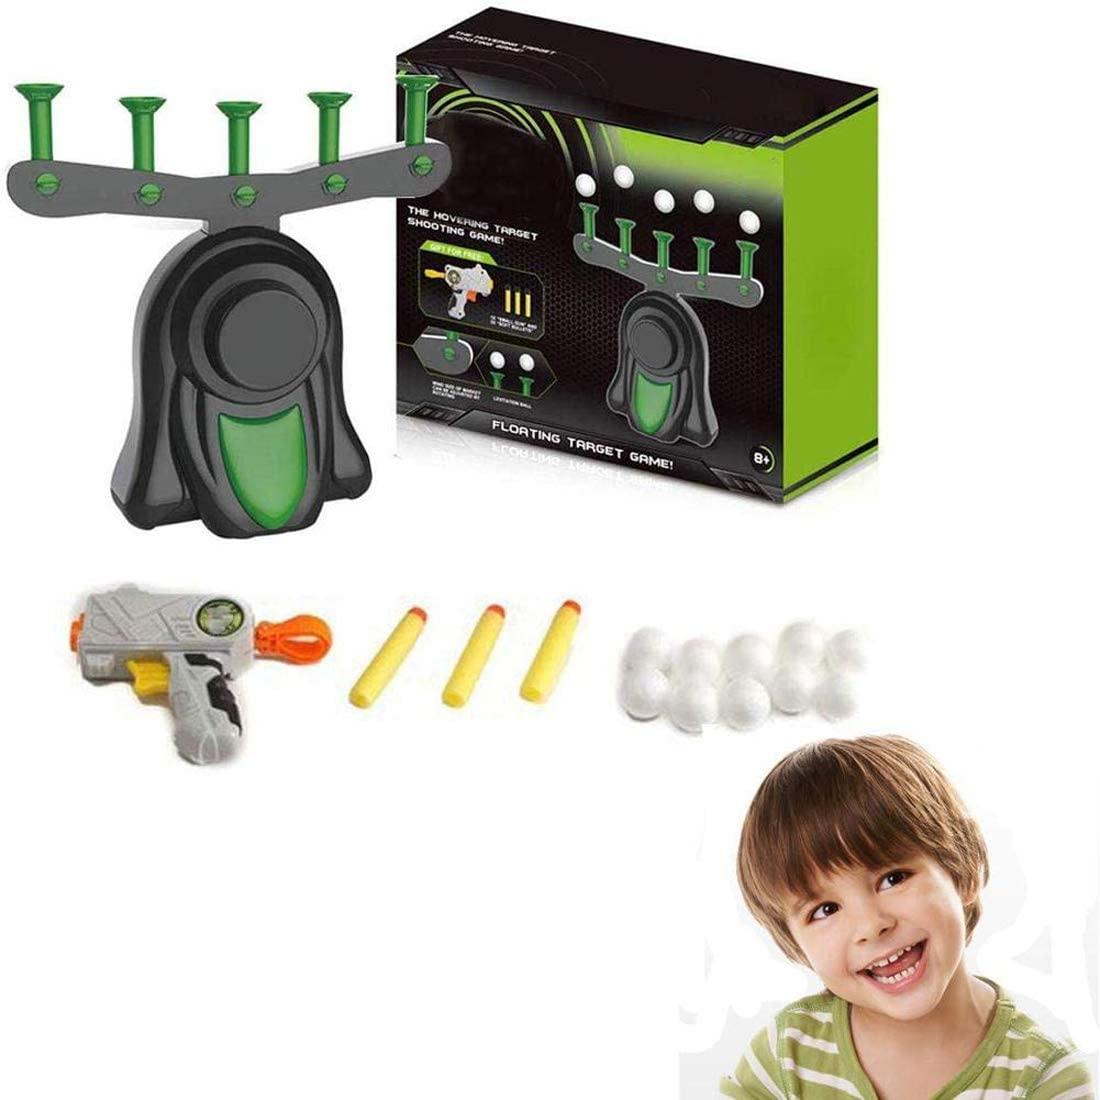 Boys and Girls TIKTOK Shooting Games for kids Electronic Running Target Toy Set with2 Players ,Foam Ball Popper Air shooting /& 18 Foam Balls,Moving Shooting Game Gift for Age 6 7 8